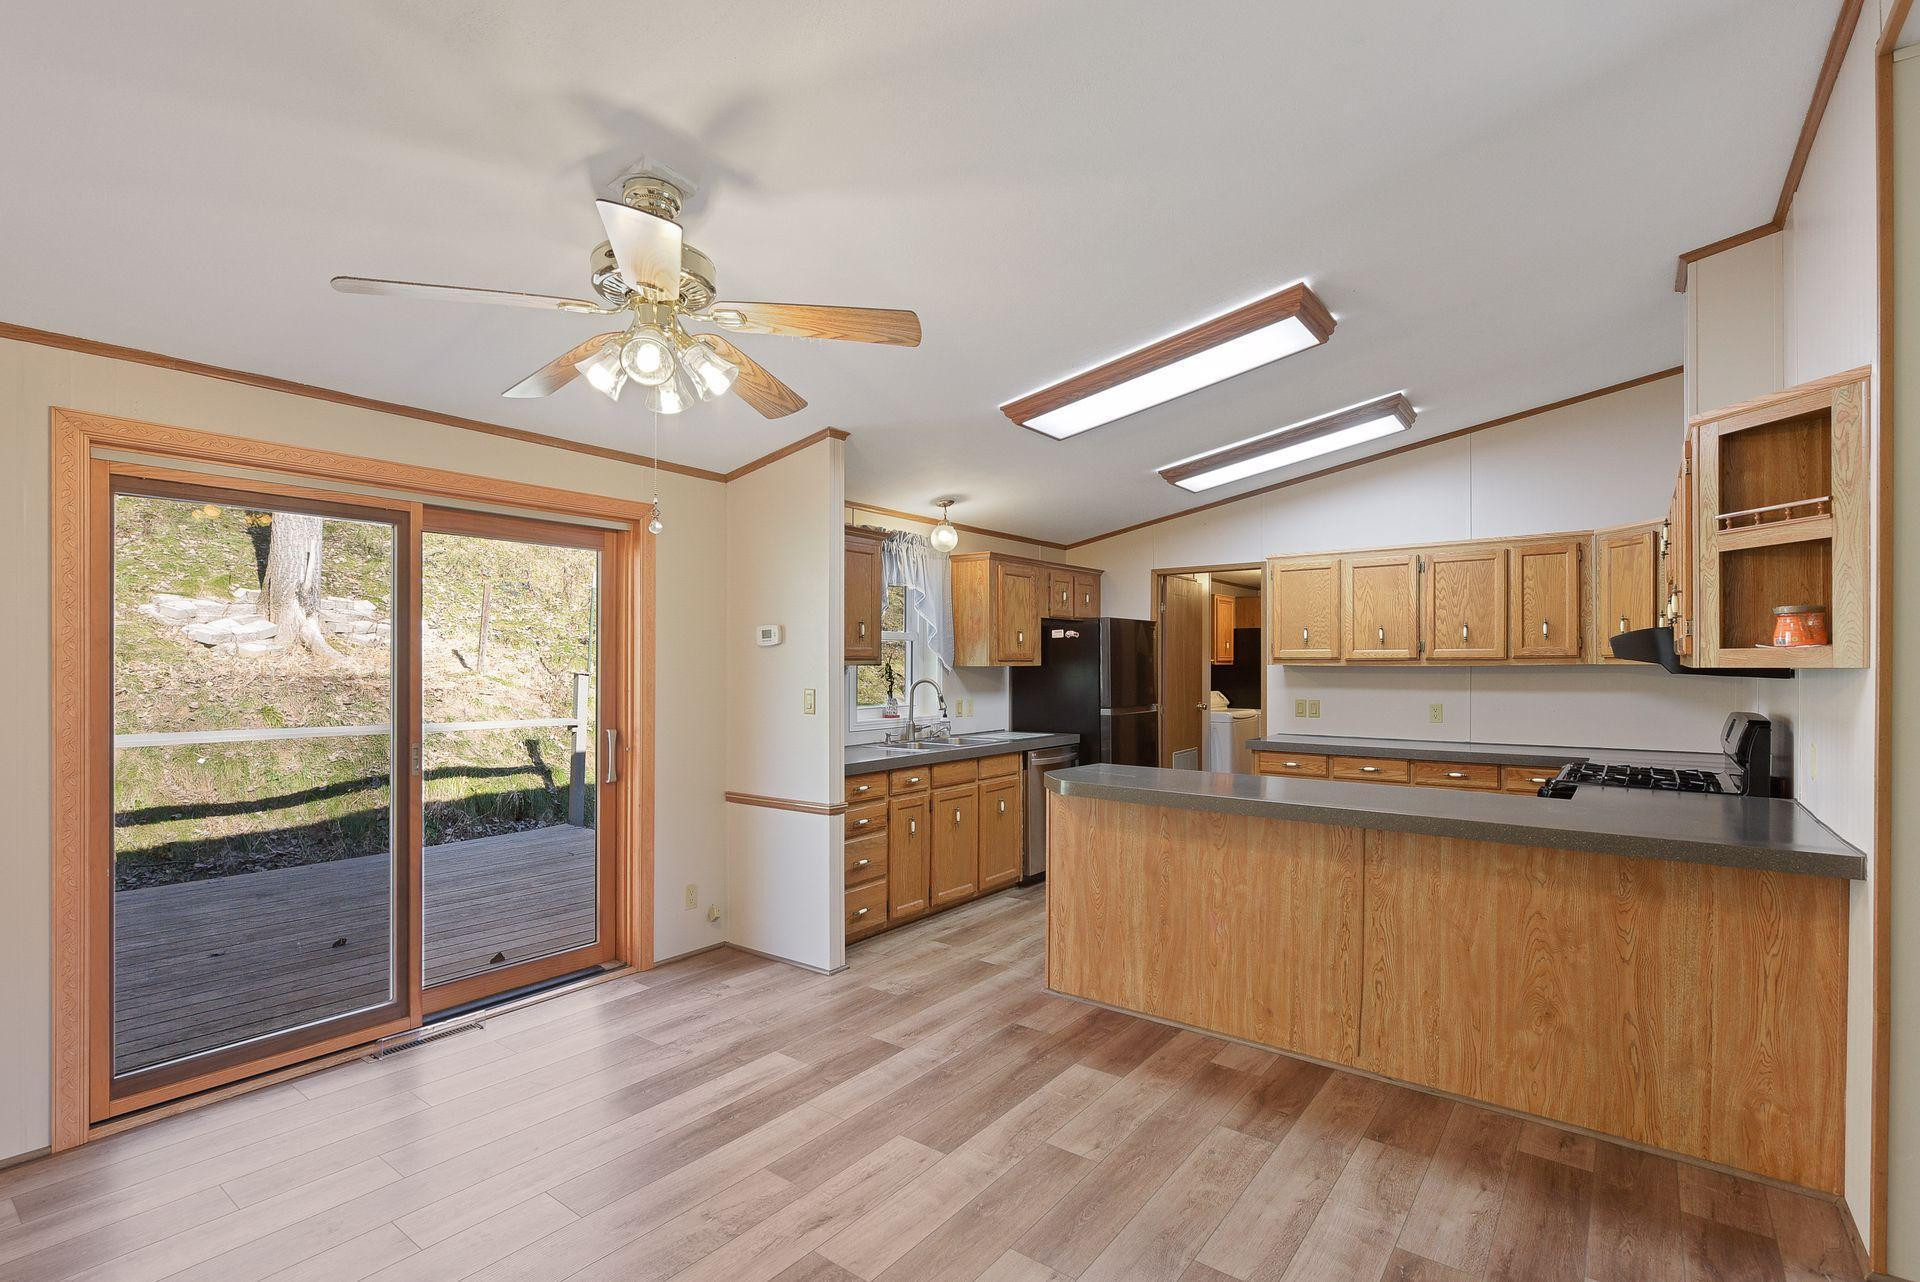 61071 N County Road 11, Millville, MN 55957